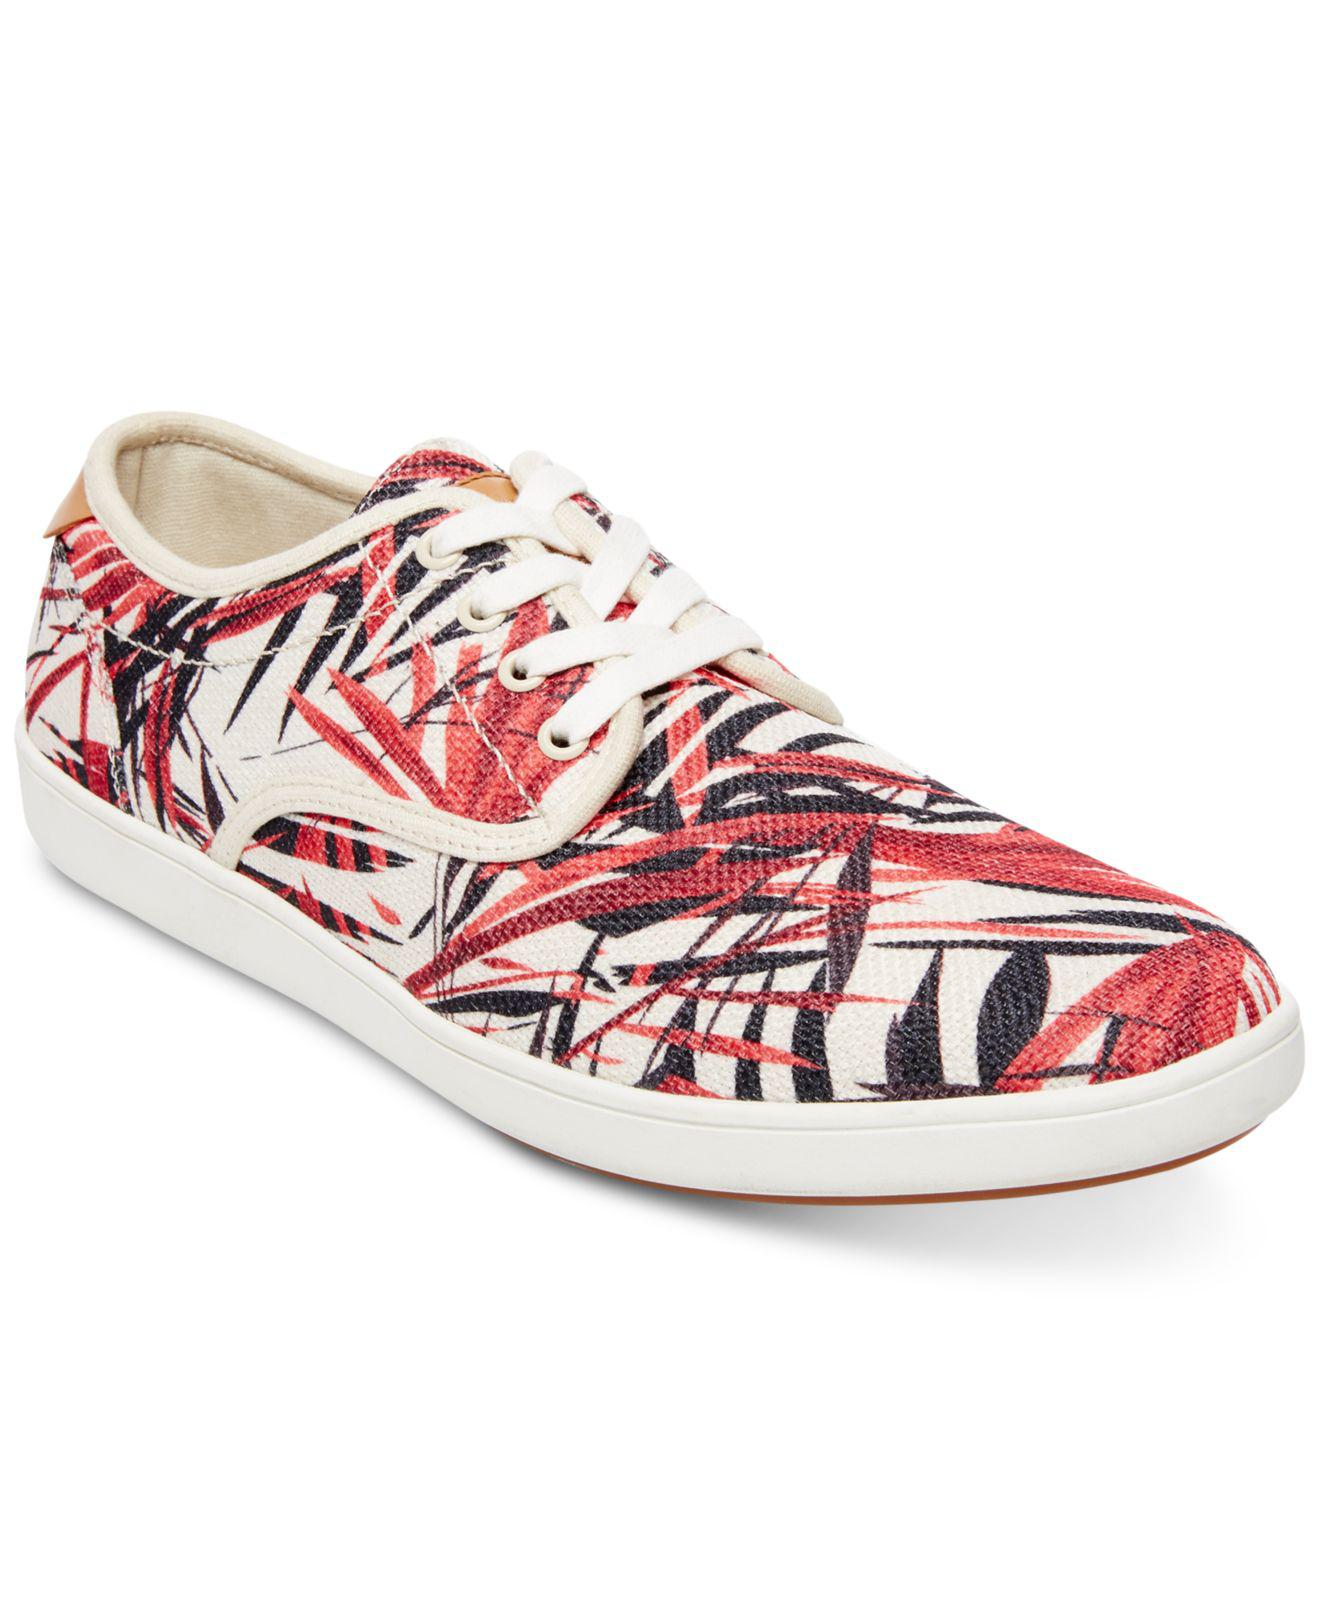 9dfd643b4ab Lyst - Steve Madden Florider Sneakers in Red